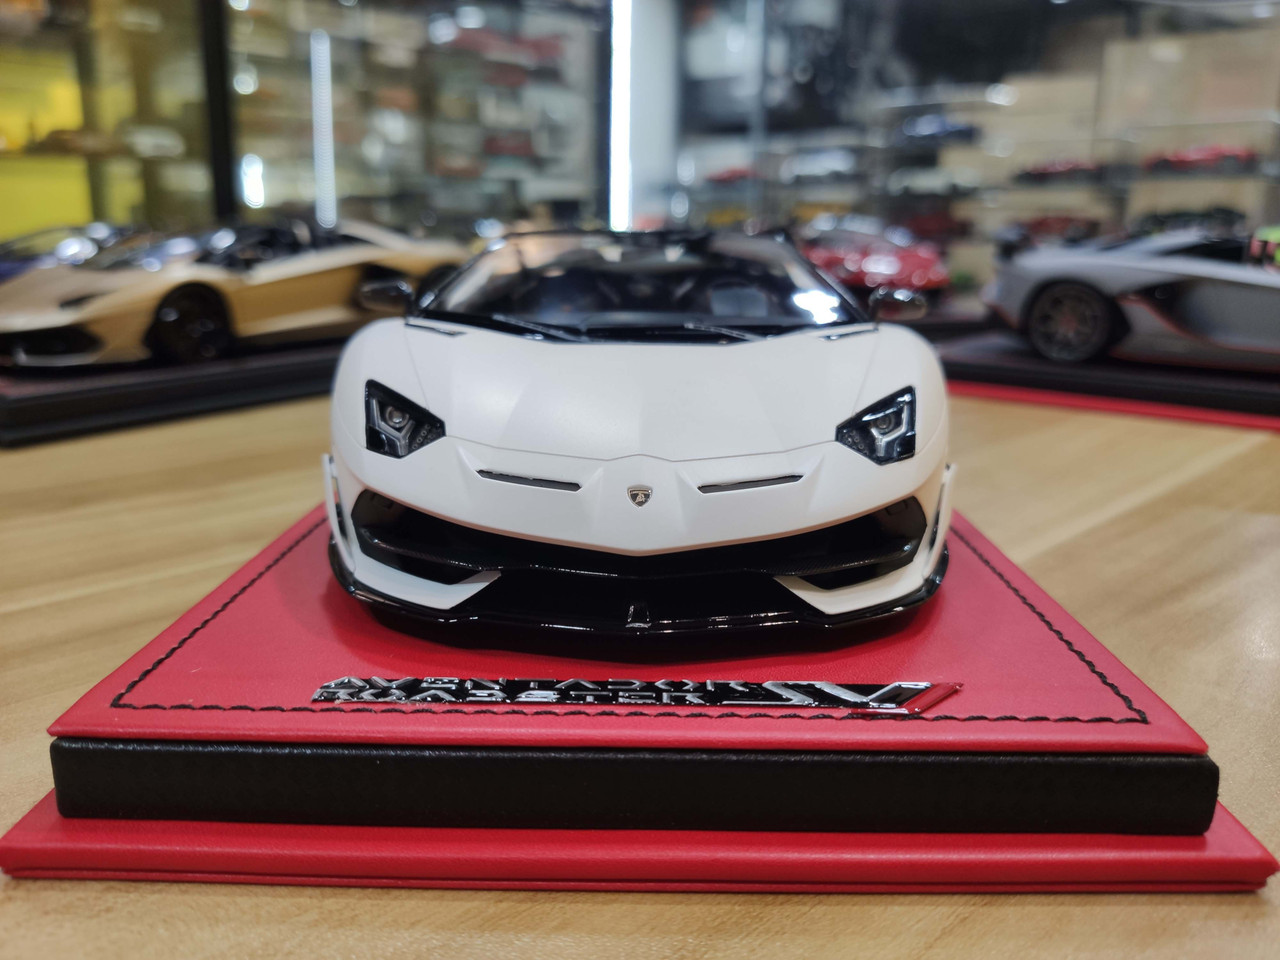 1/18 MR Lamborghini Aventador SVJ Roadster (White) Resin Car Model Limited 49 Pieces